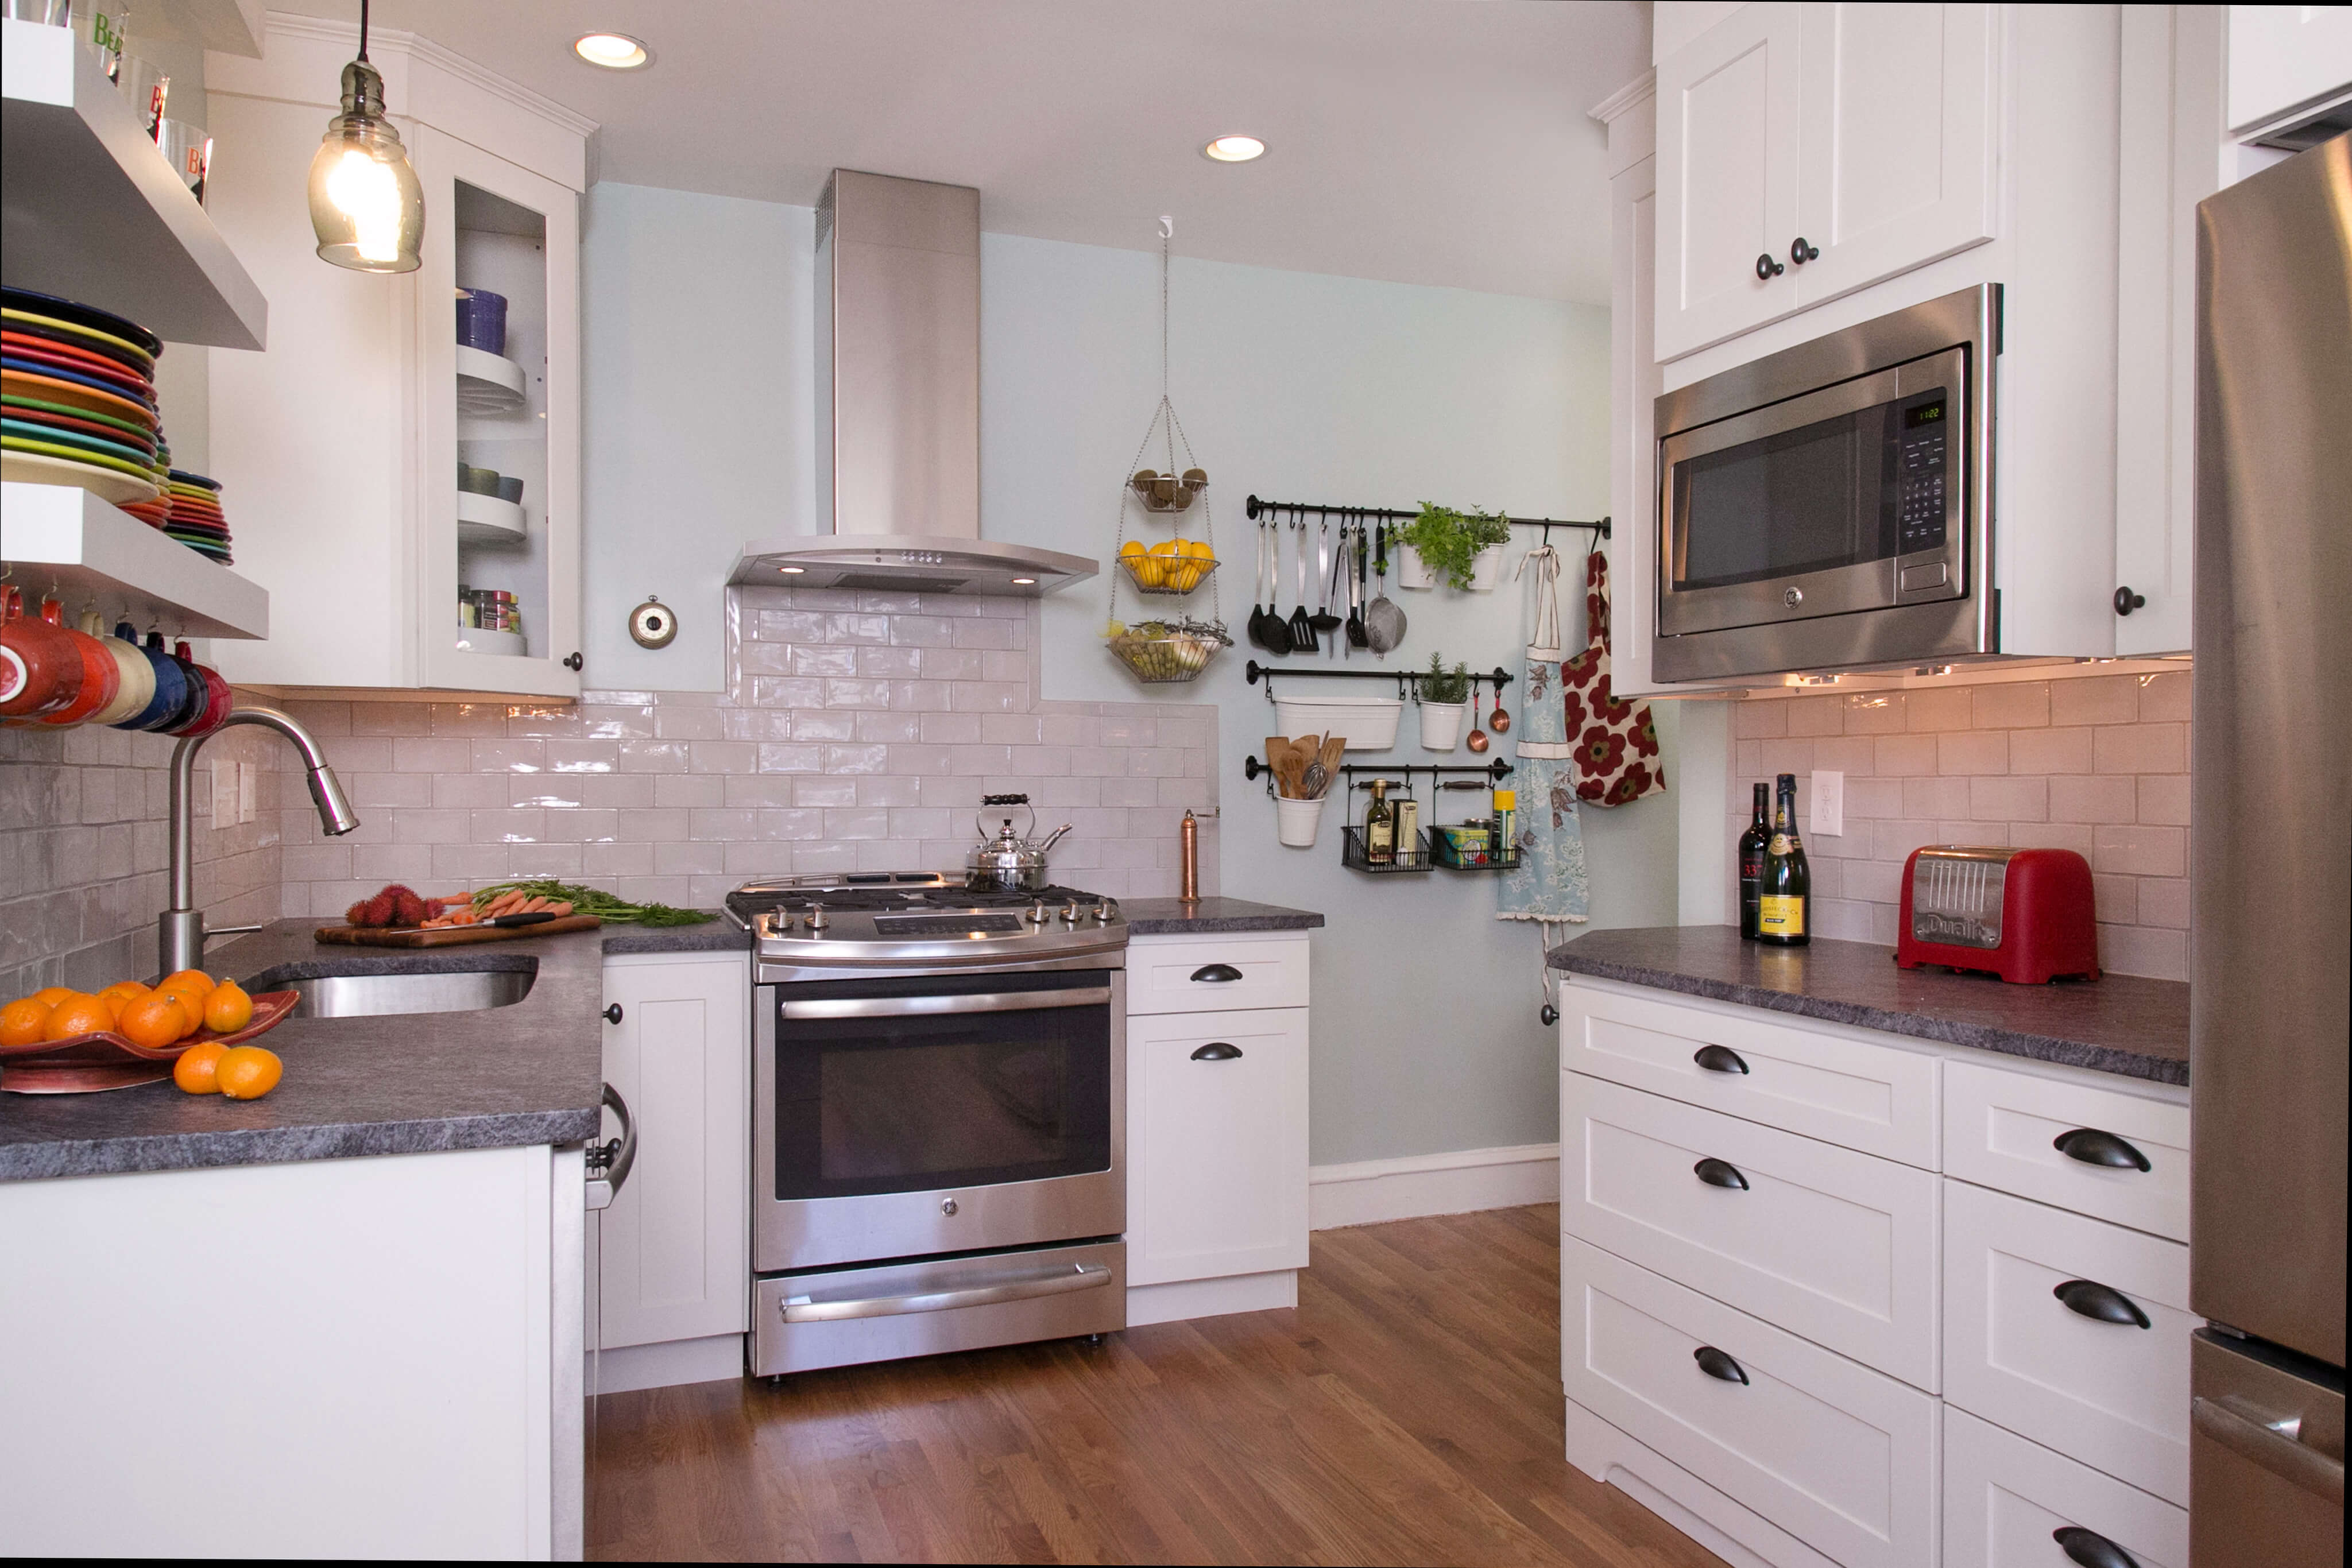 Jenkintown, PA Modern and Homey Kitchen Remodel